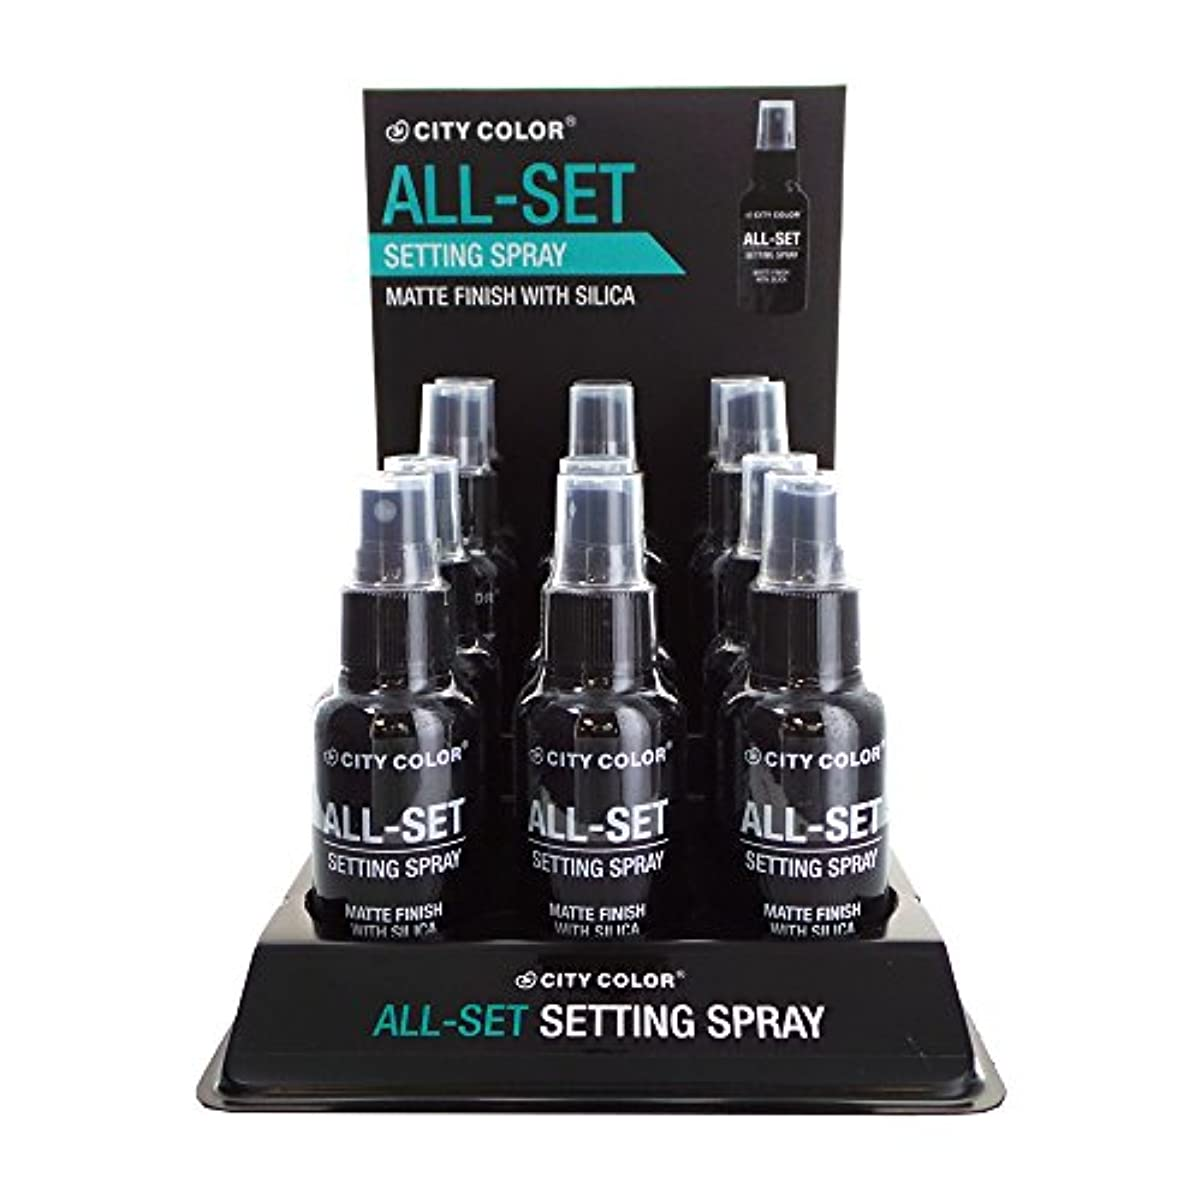 縫い目鋸歯状団結CITY COLOR All-Set Setting Spray Display Set, 12 Pieces (並行輸入品)